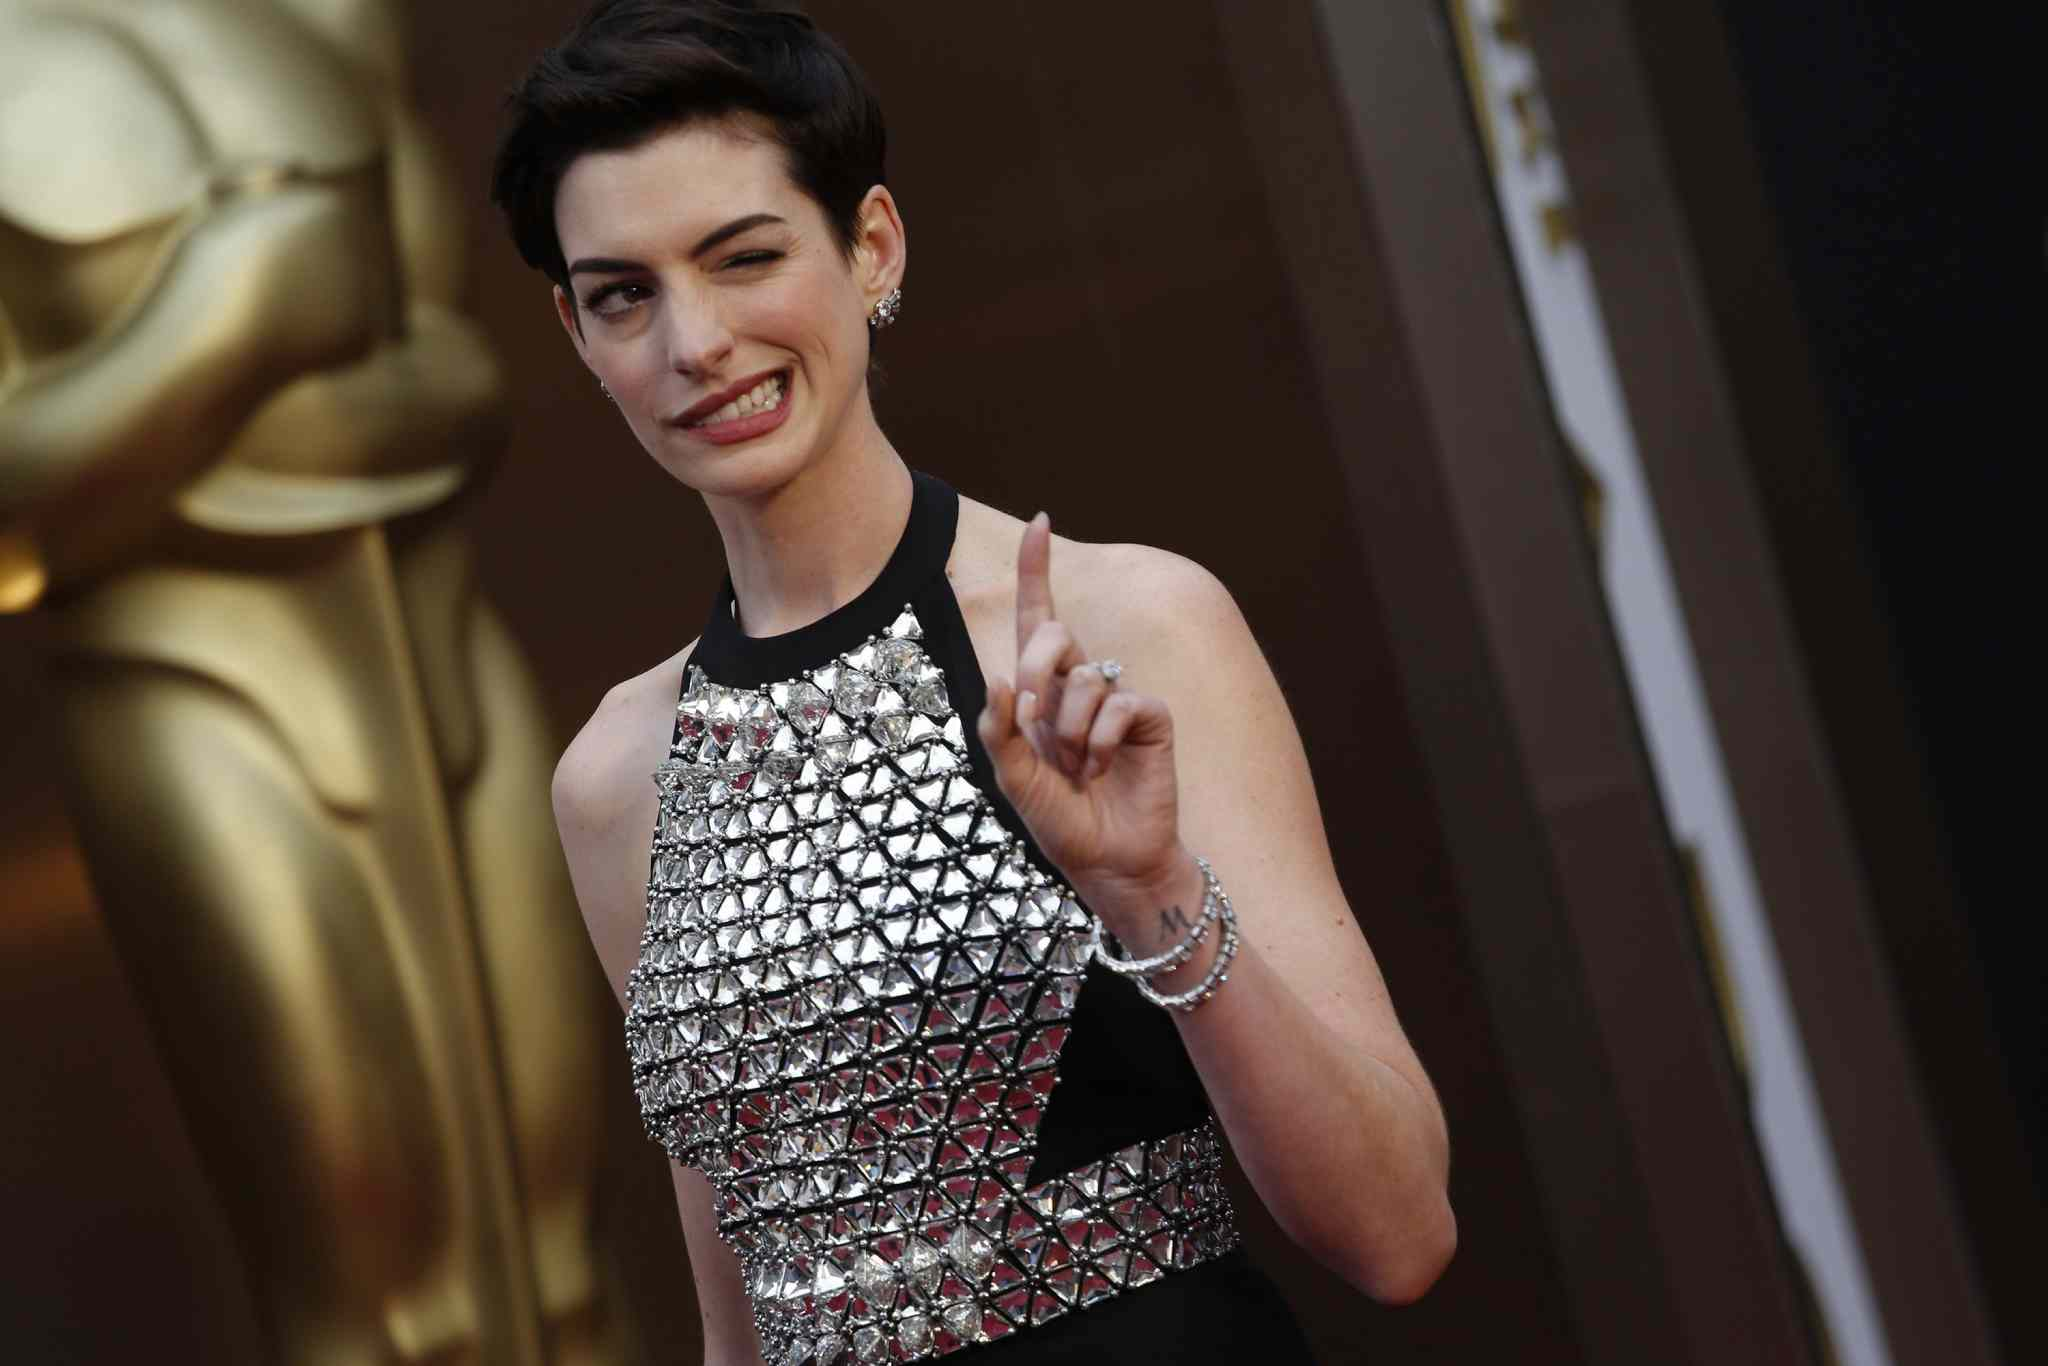 Anne Hathaway arrives at the 86th annual Academy Awards at the Dolby Theatre at Hollywood & Highland Center in Los Angeles.